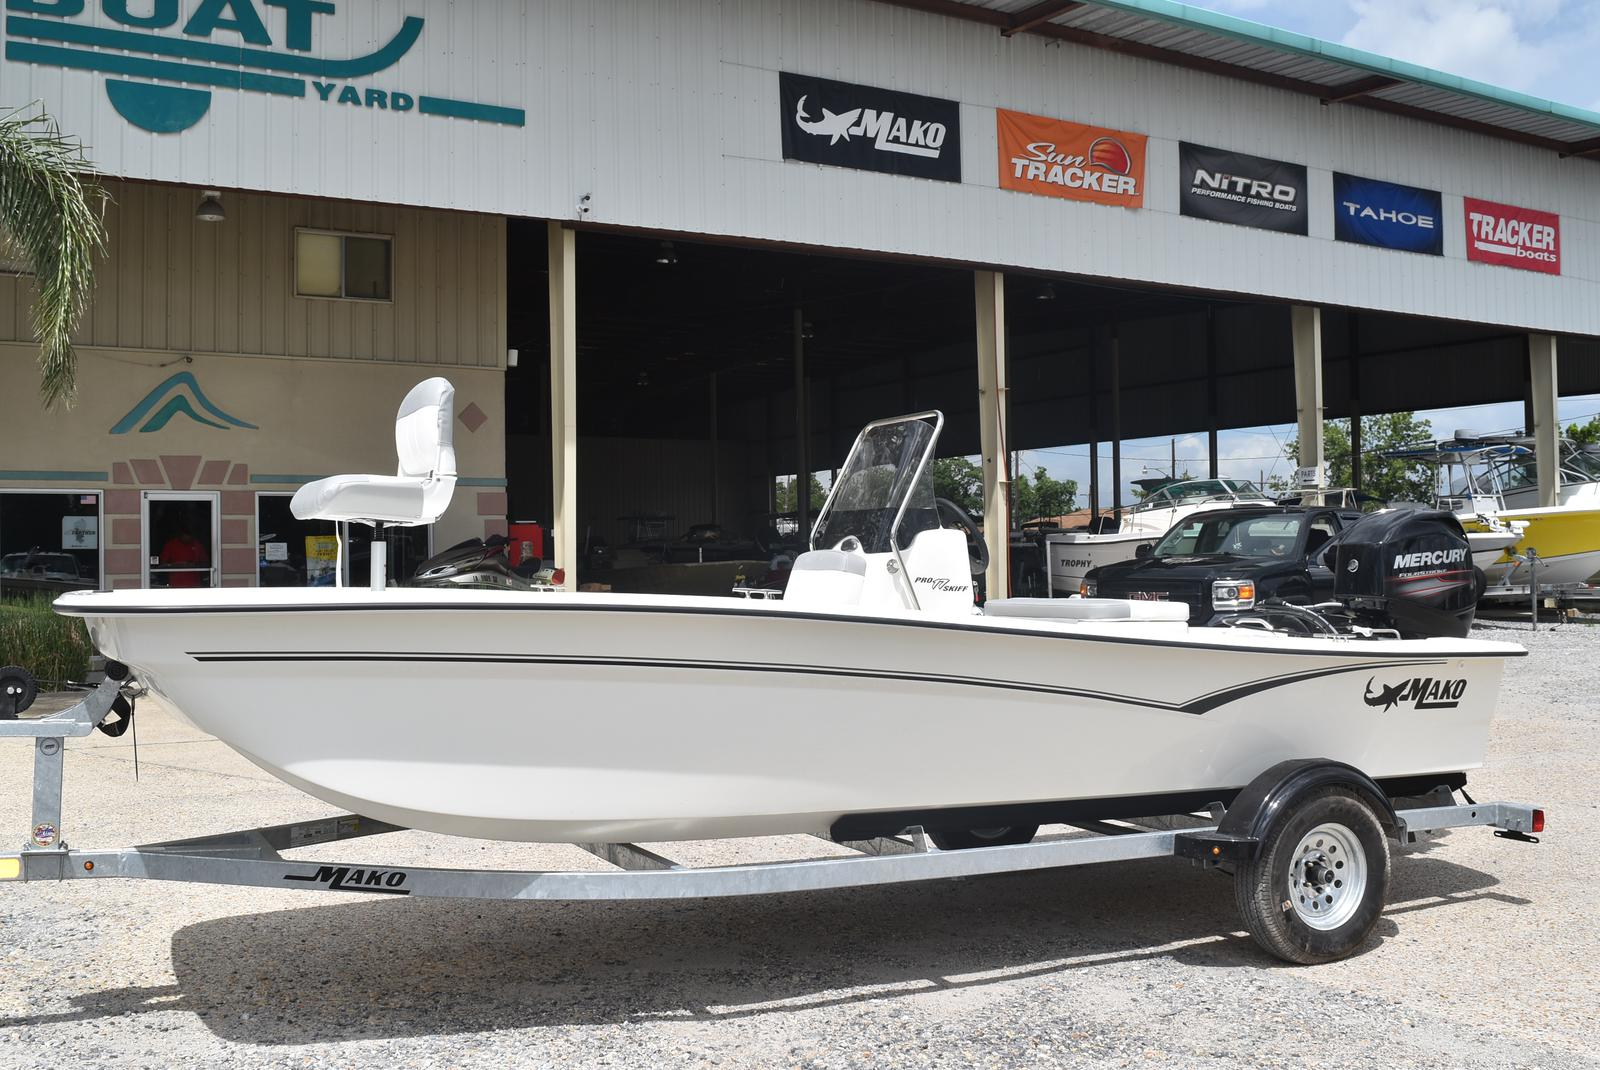 2020 Mako boat for sale, model of the boat is Pro Skiff 17, 75 ELPT & Image # 134 of 702